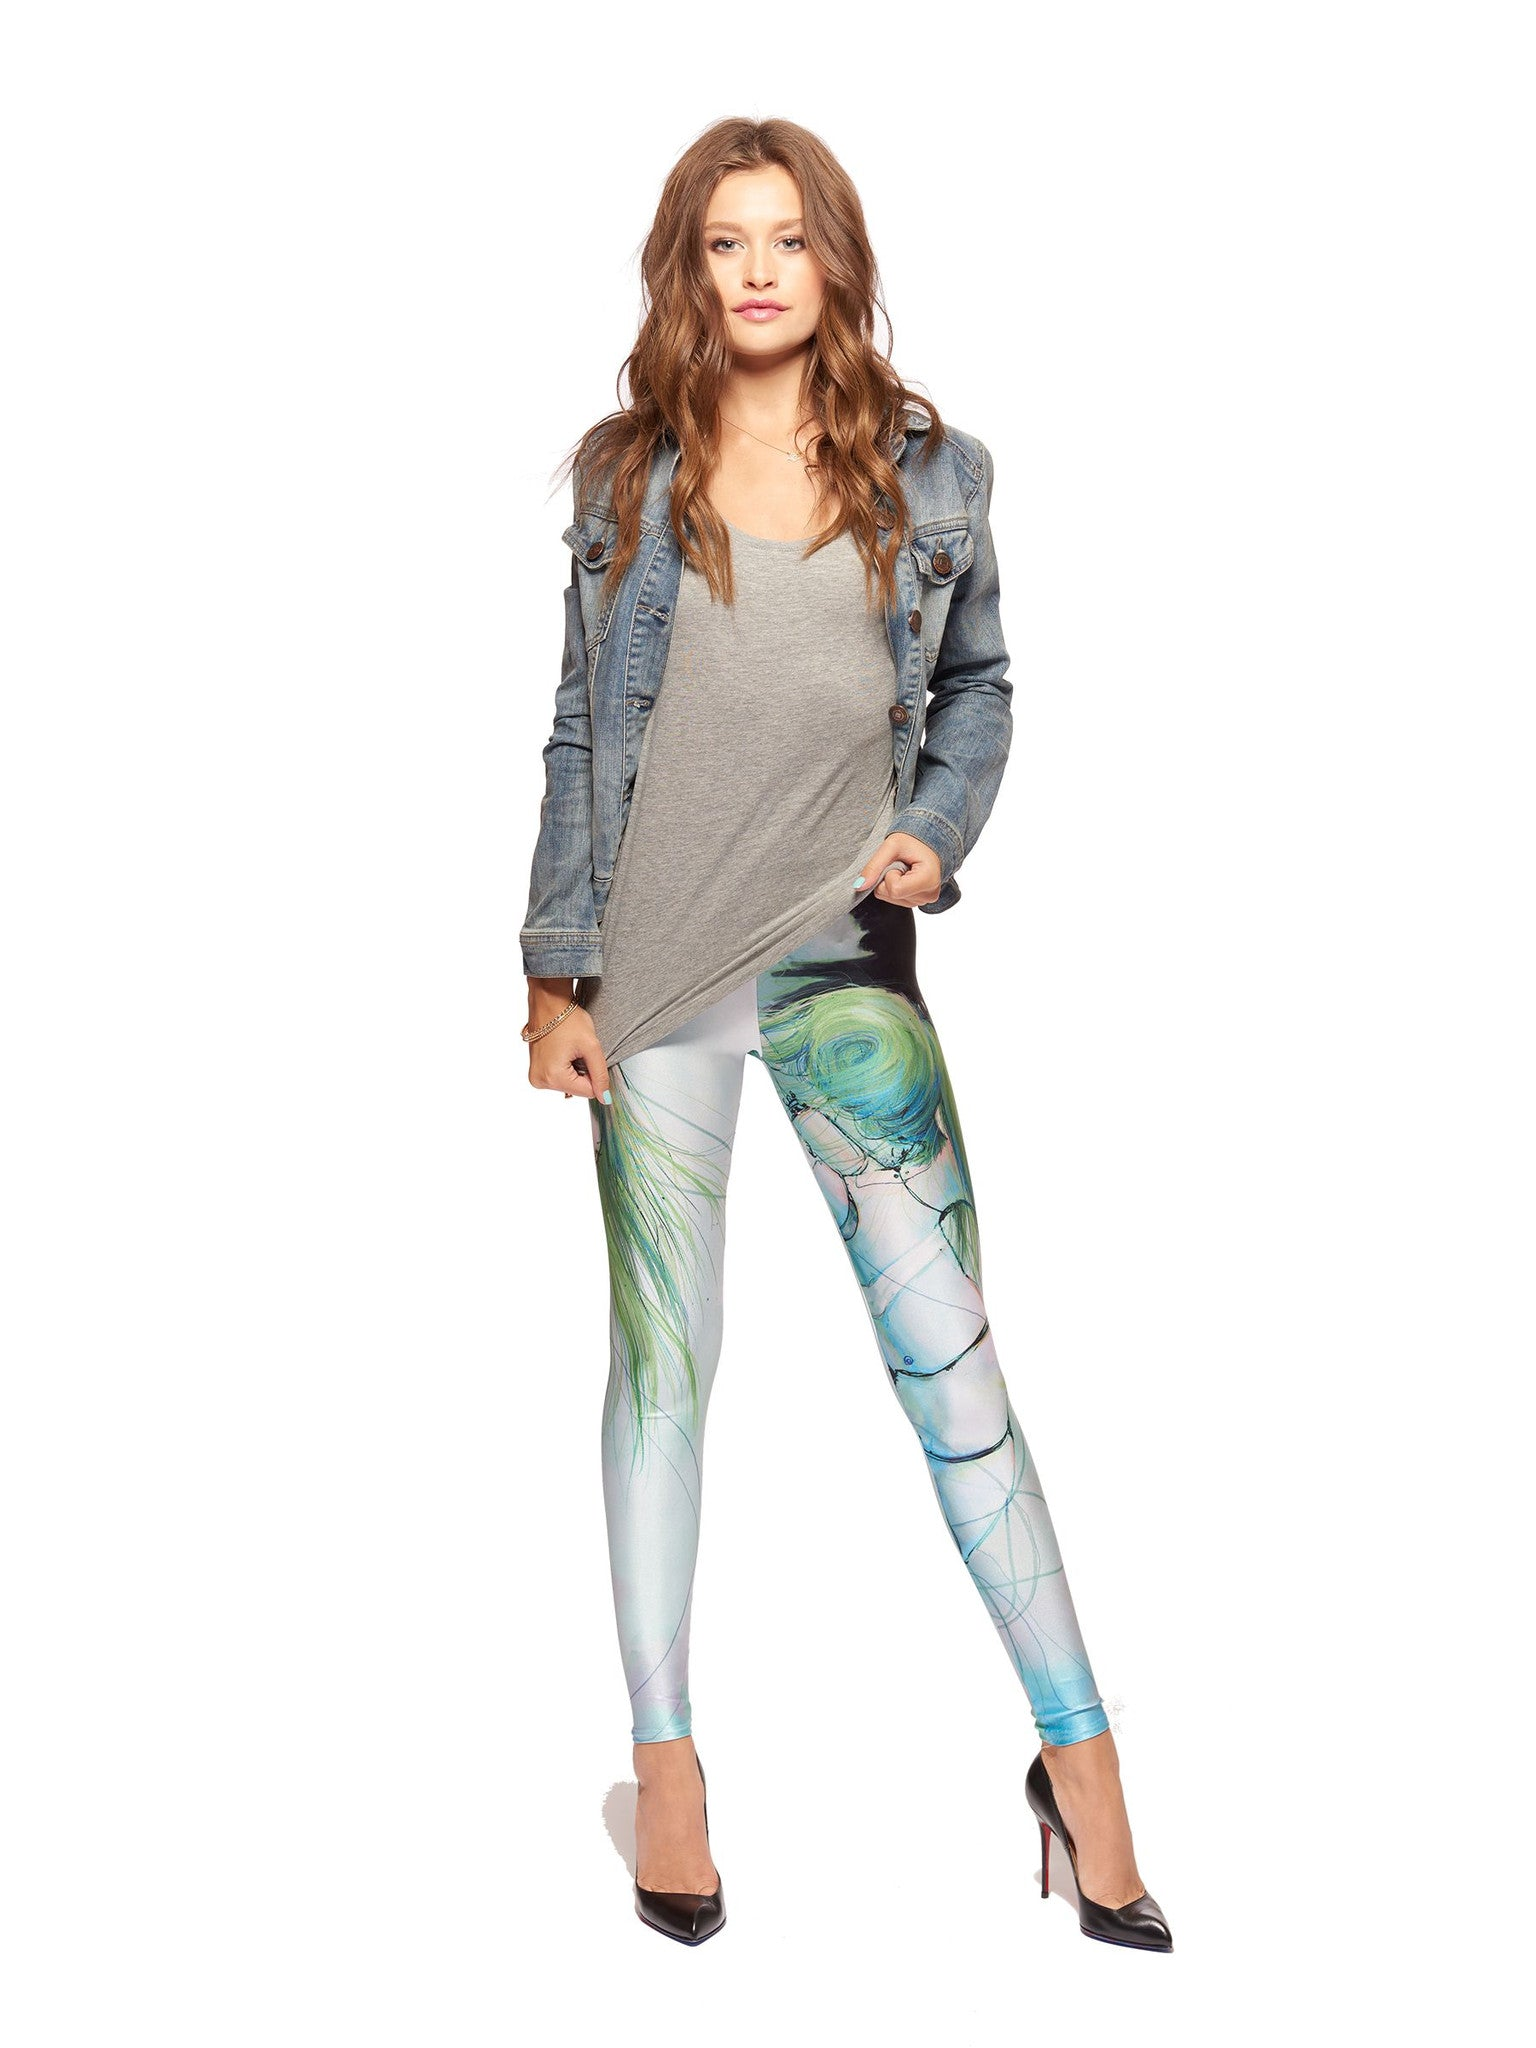 Disassembled Tears Queen West Leggings - Nuvango  - 1